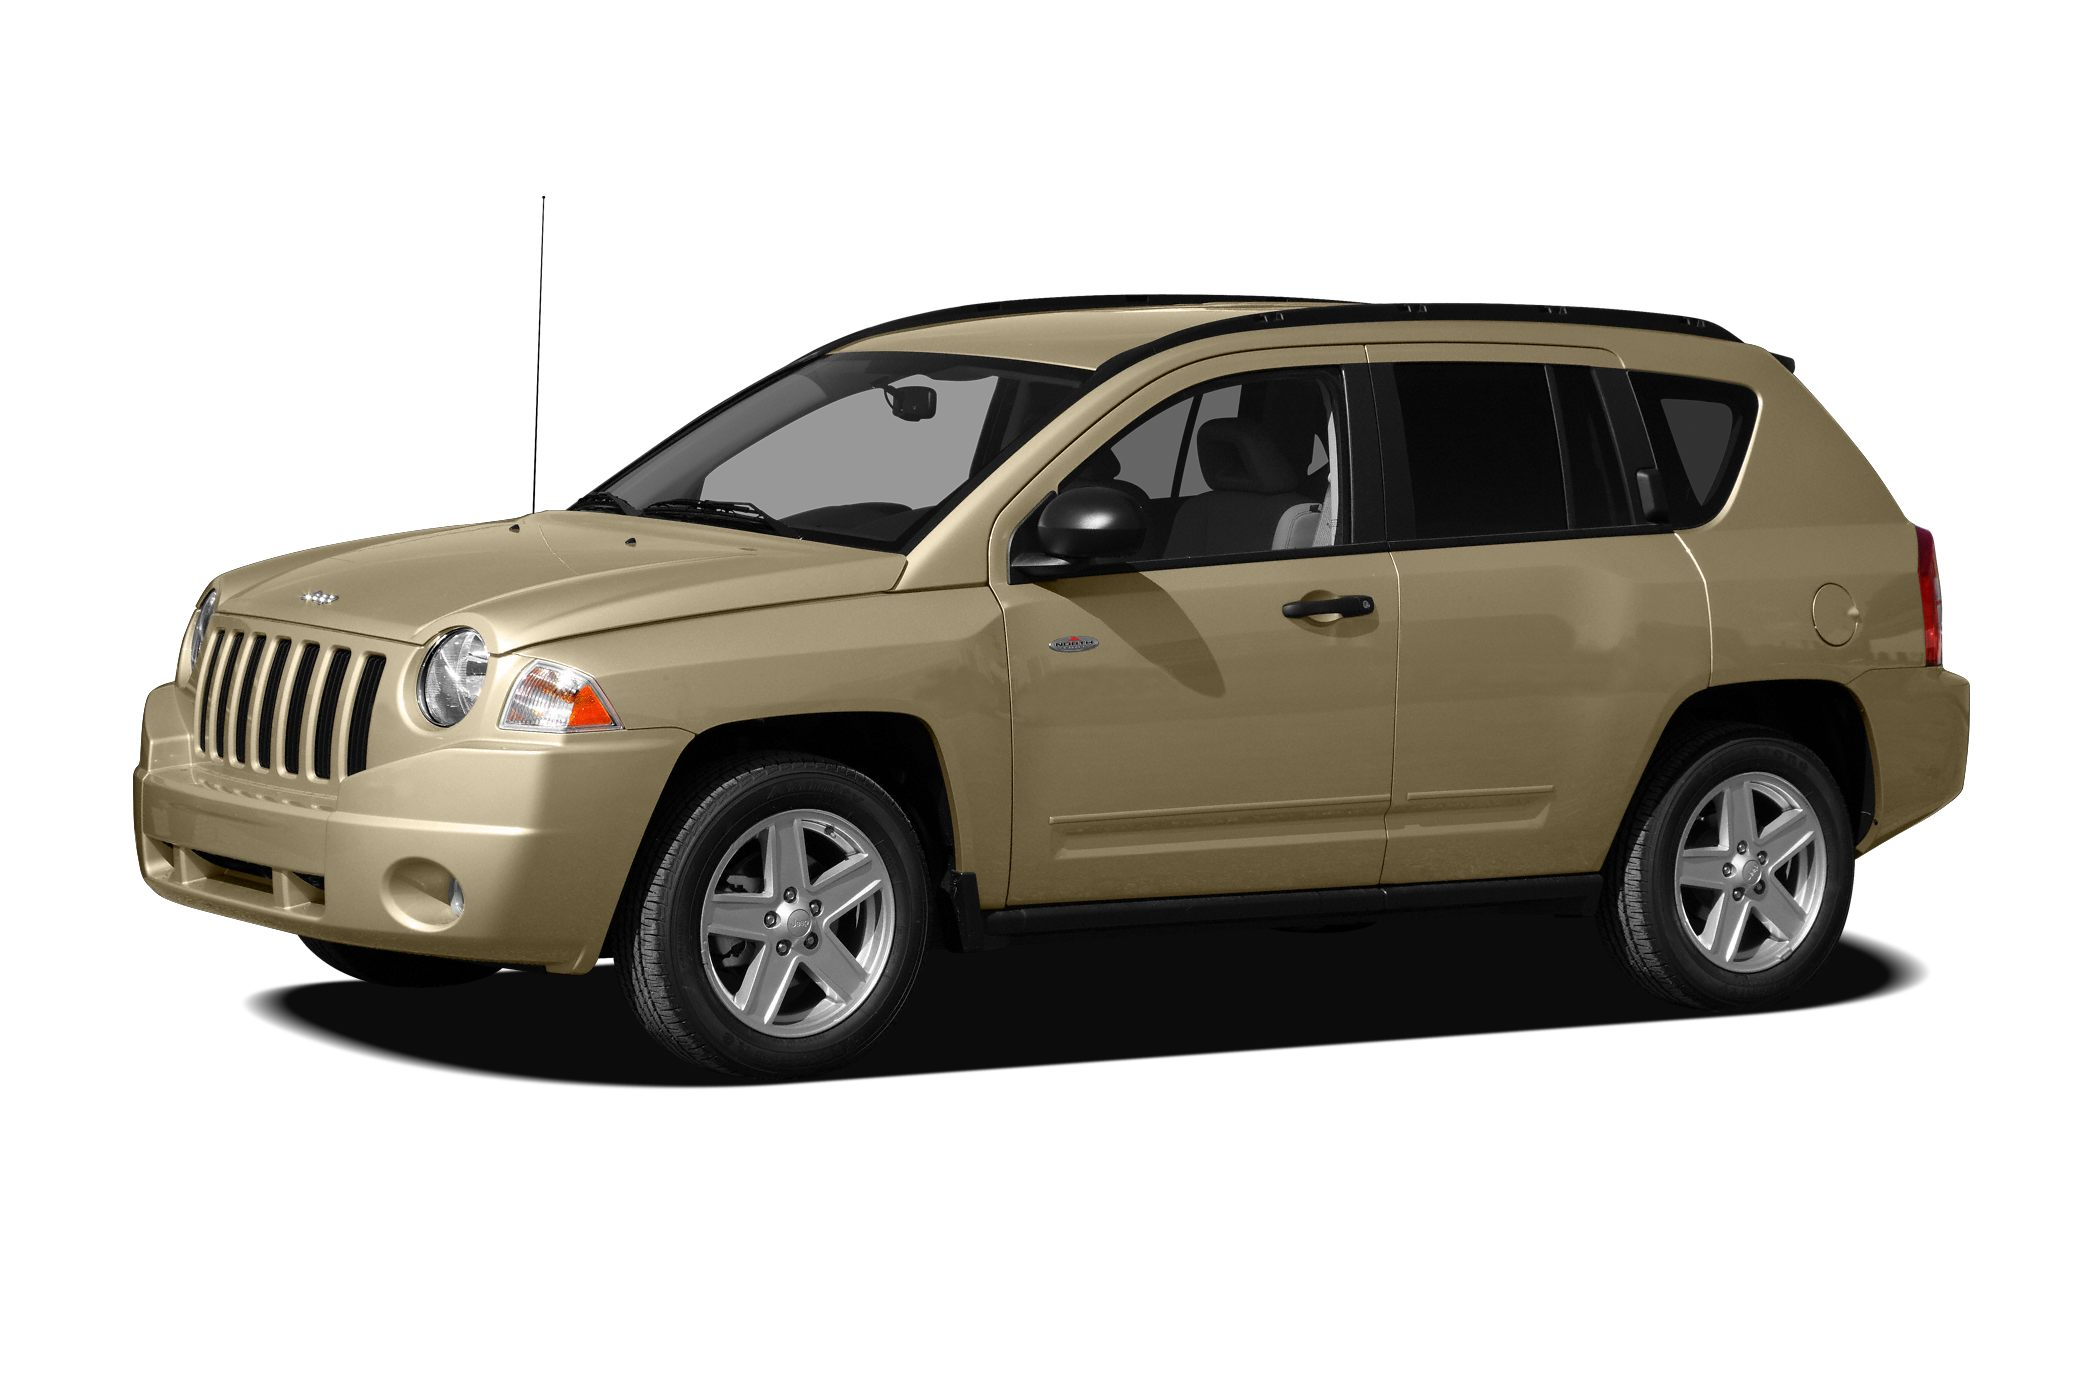 2010 Jeep Compass Sport SUV for sale in Killeen for $12,547 with 76,232 miles